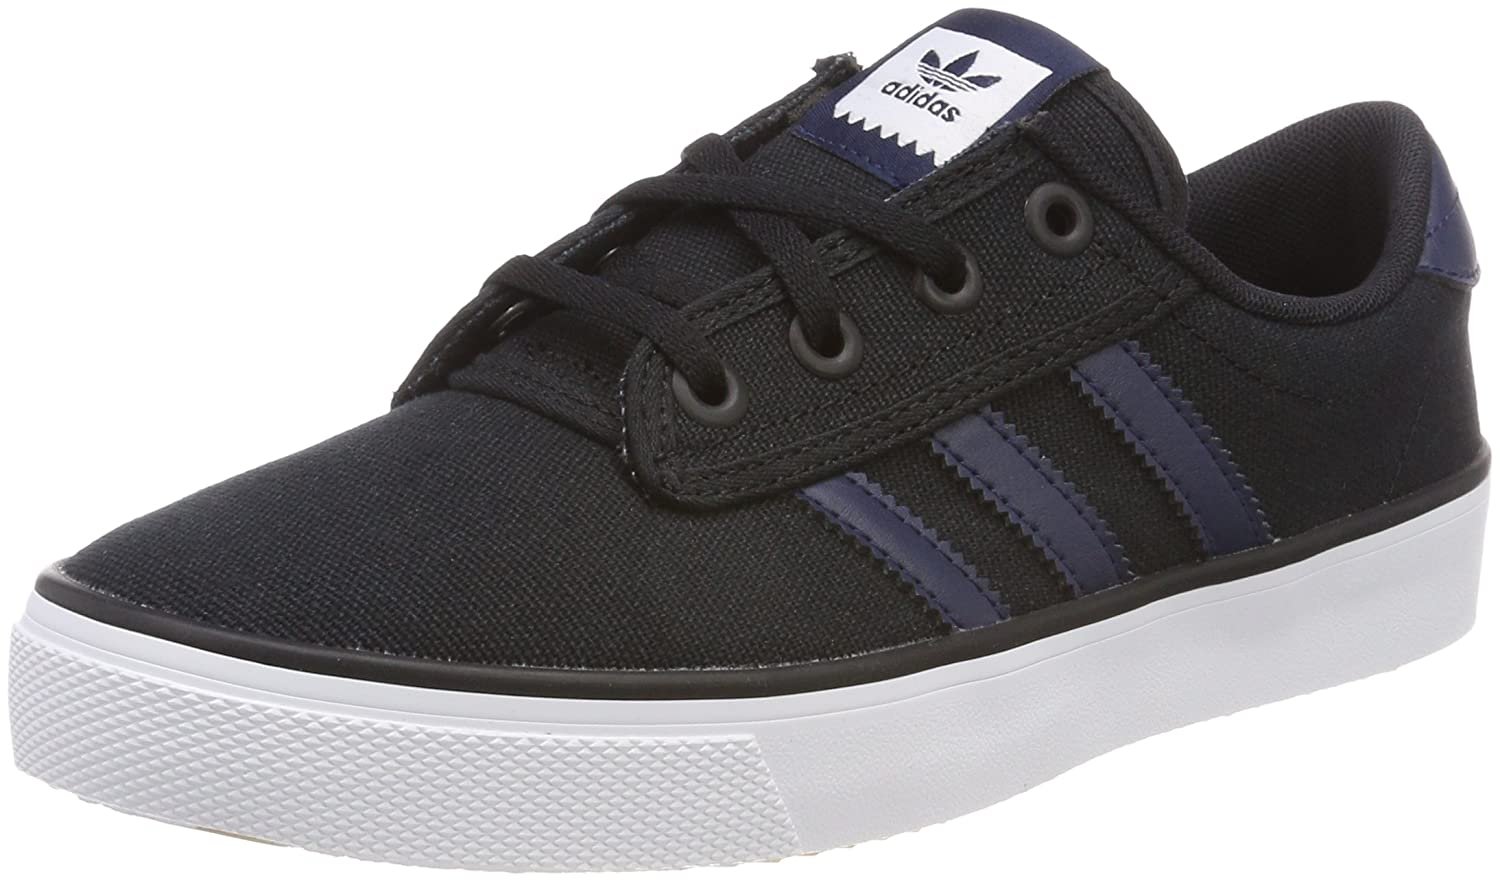 Adidas Kiel, Zapatillas Unisex Adulto 42 2/3 EU|Negro (Core Black/Collegiate Navy/Footwear White 0)